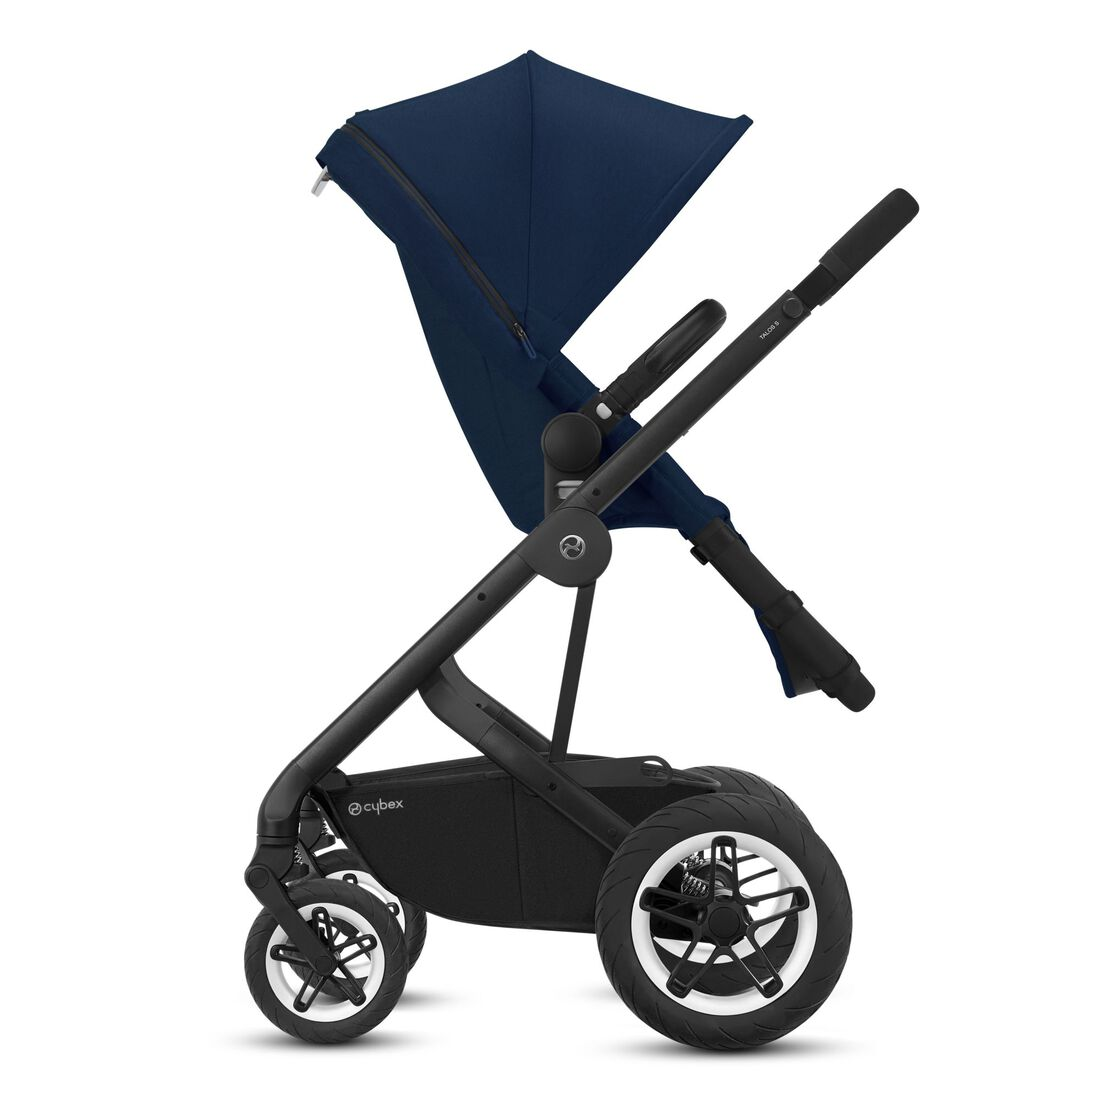 CYBEX Talos S 2-in-1 - Navy Blue in Navy Blue large Bild 3